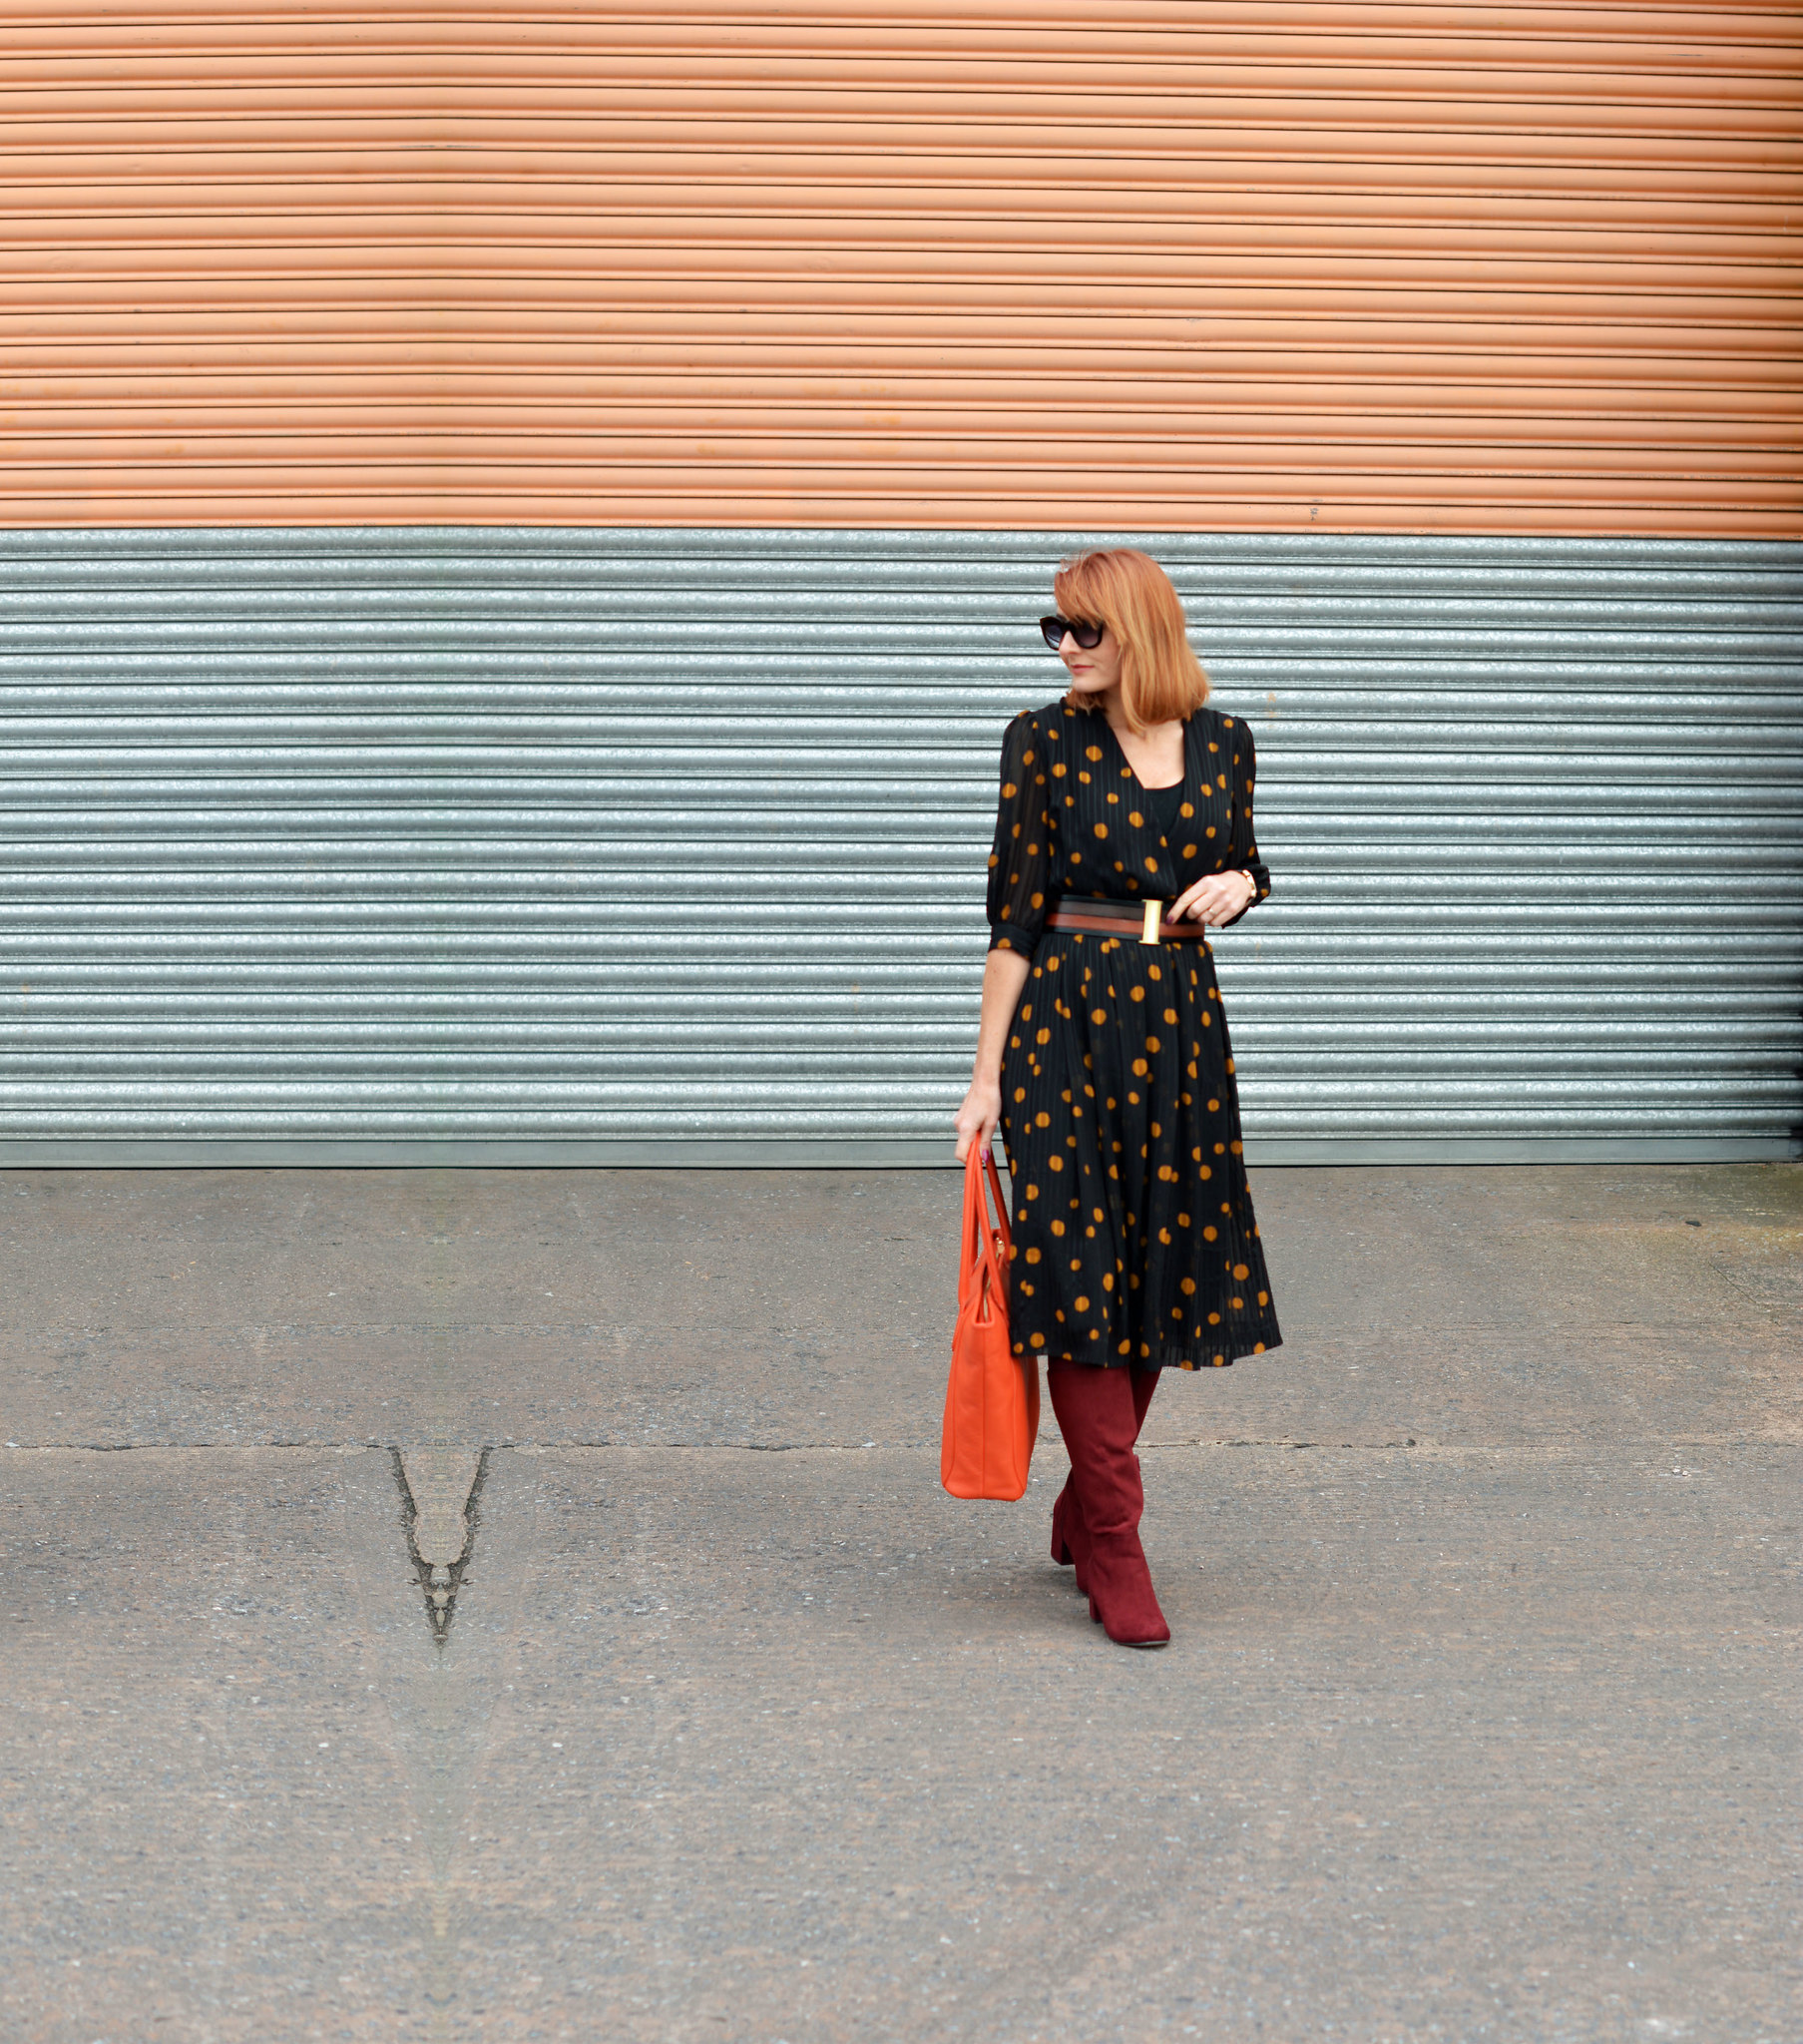 Vintage 70s polka dots dress, burgundy boots, orange tote | Not Dressed As Lamb